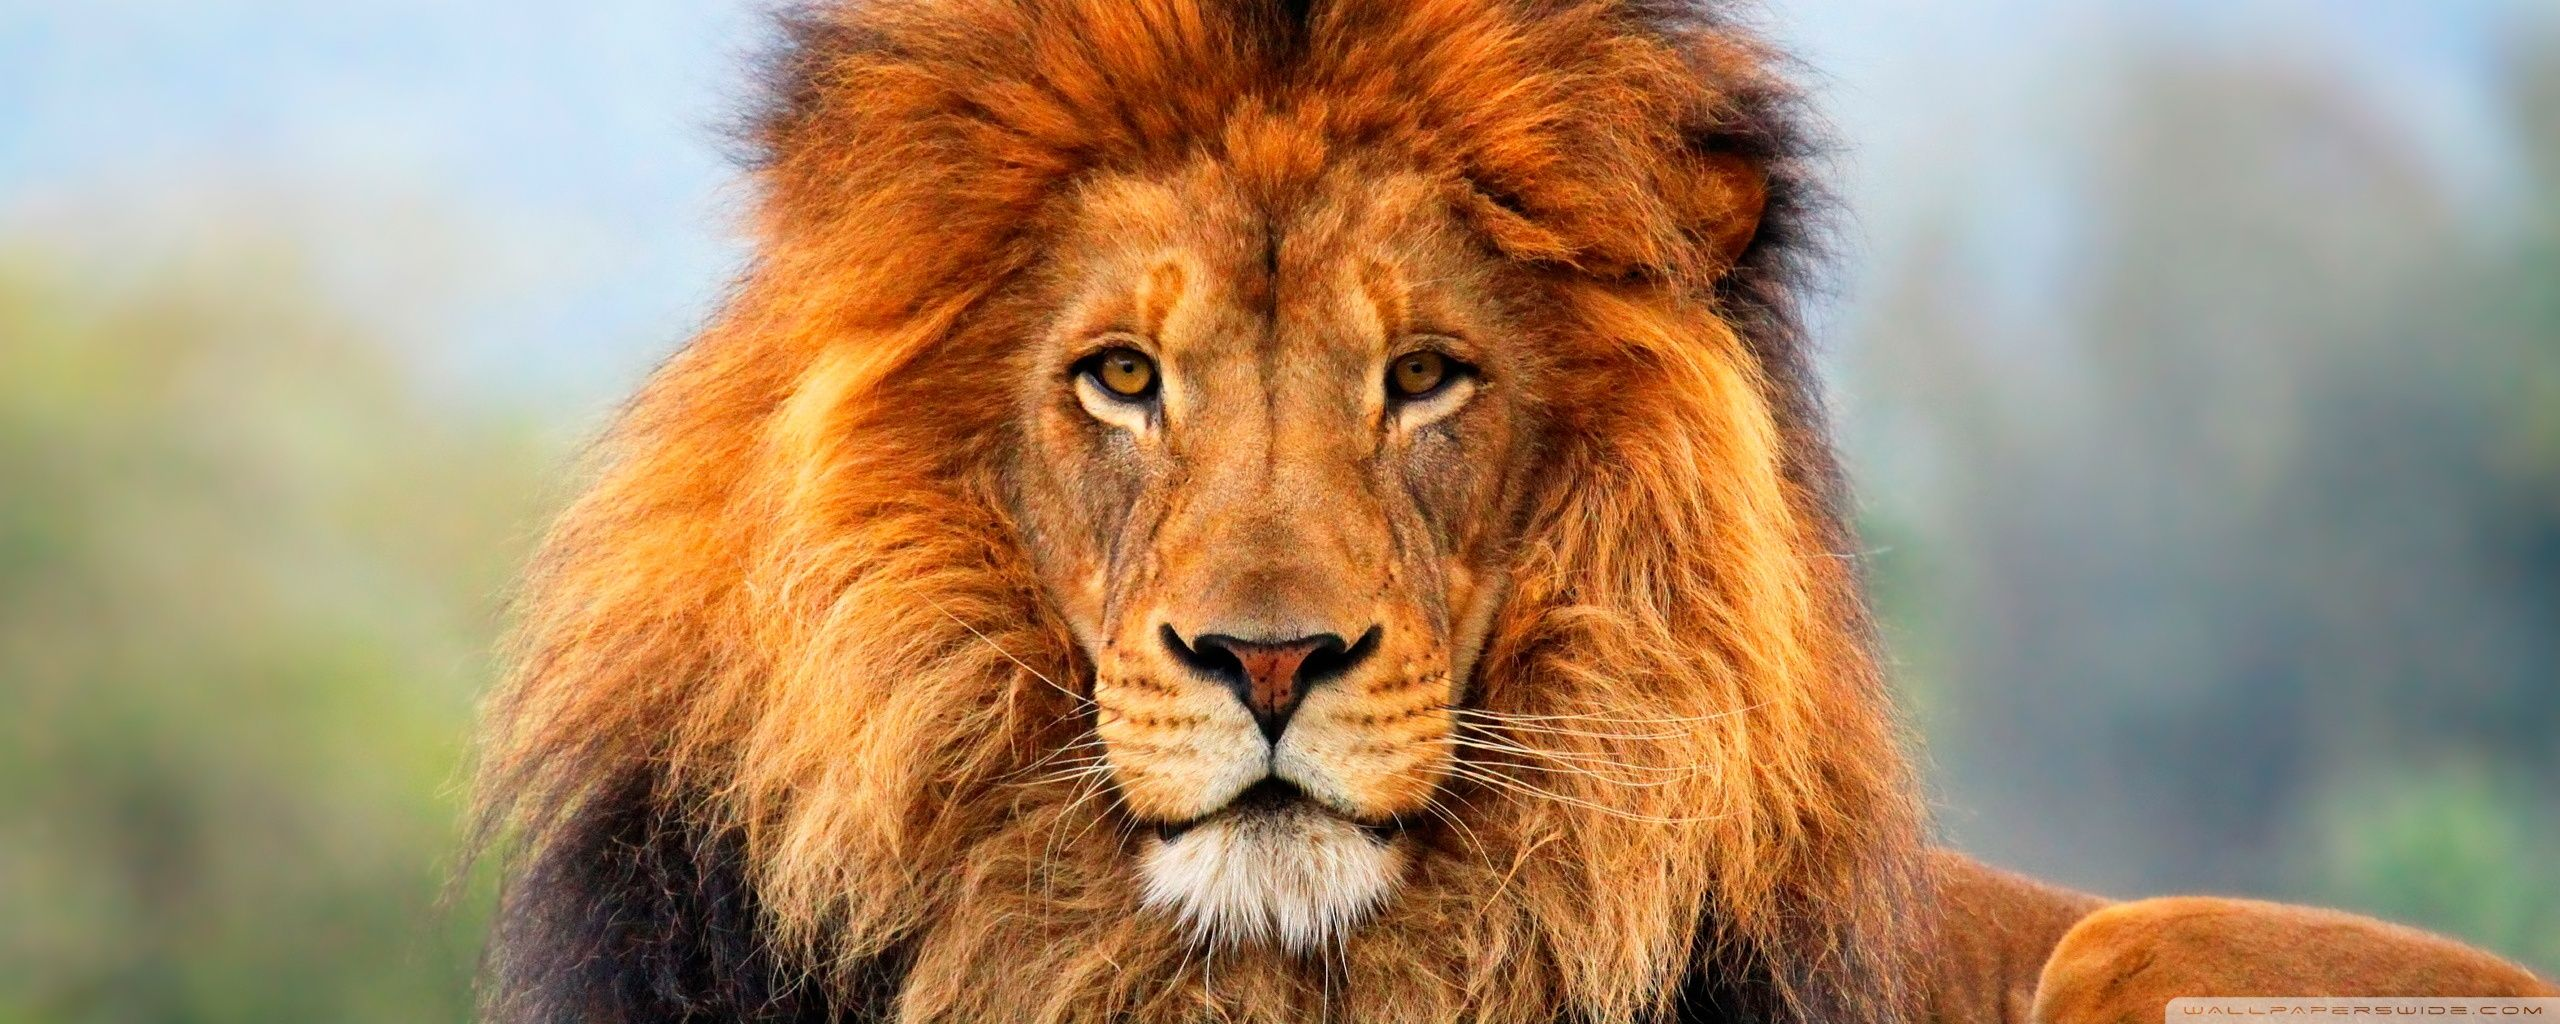 Pin By Mark On Earth S Salvation Fauna Flora Wildlife Lion Images Abstract Lion Lion Wallpaper